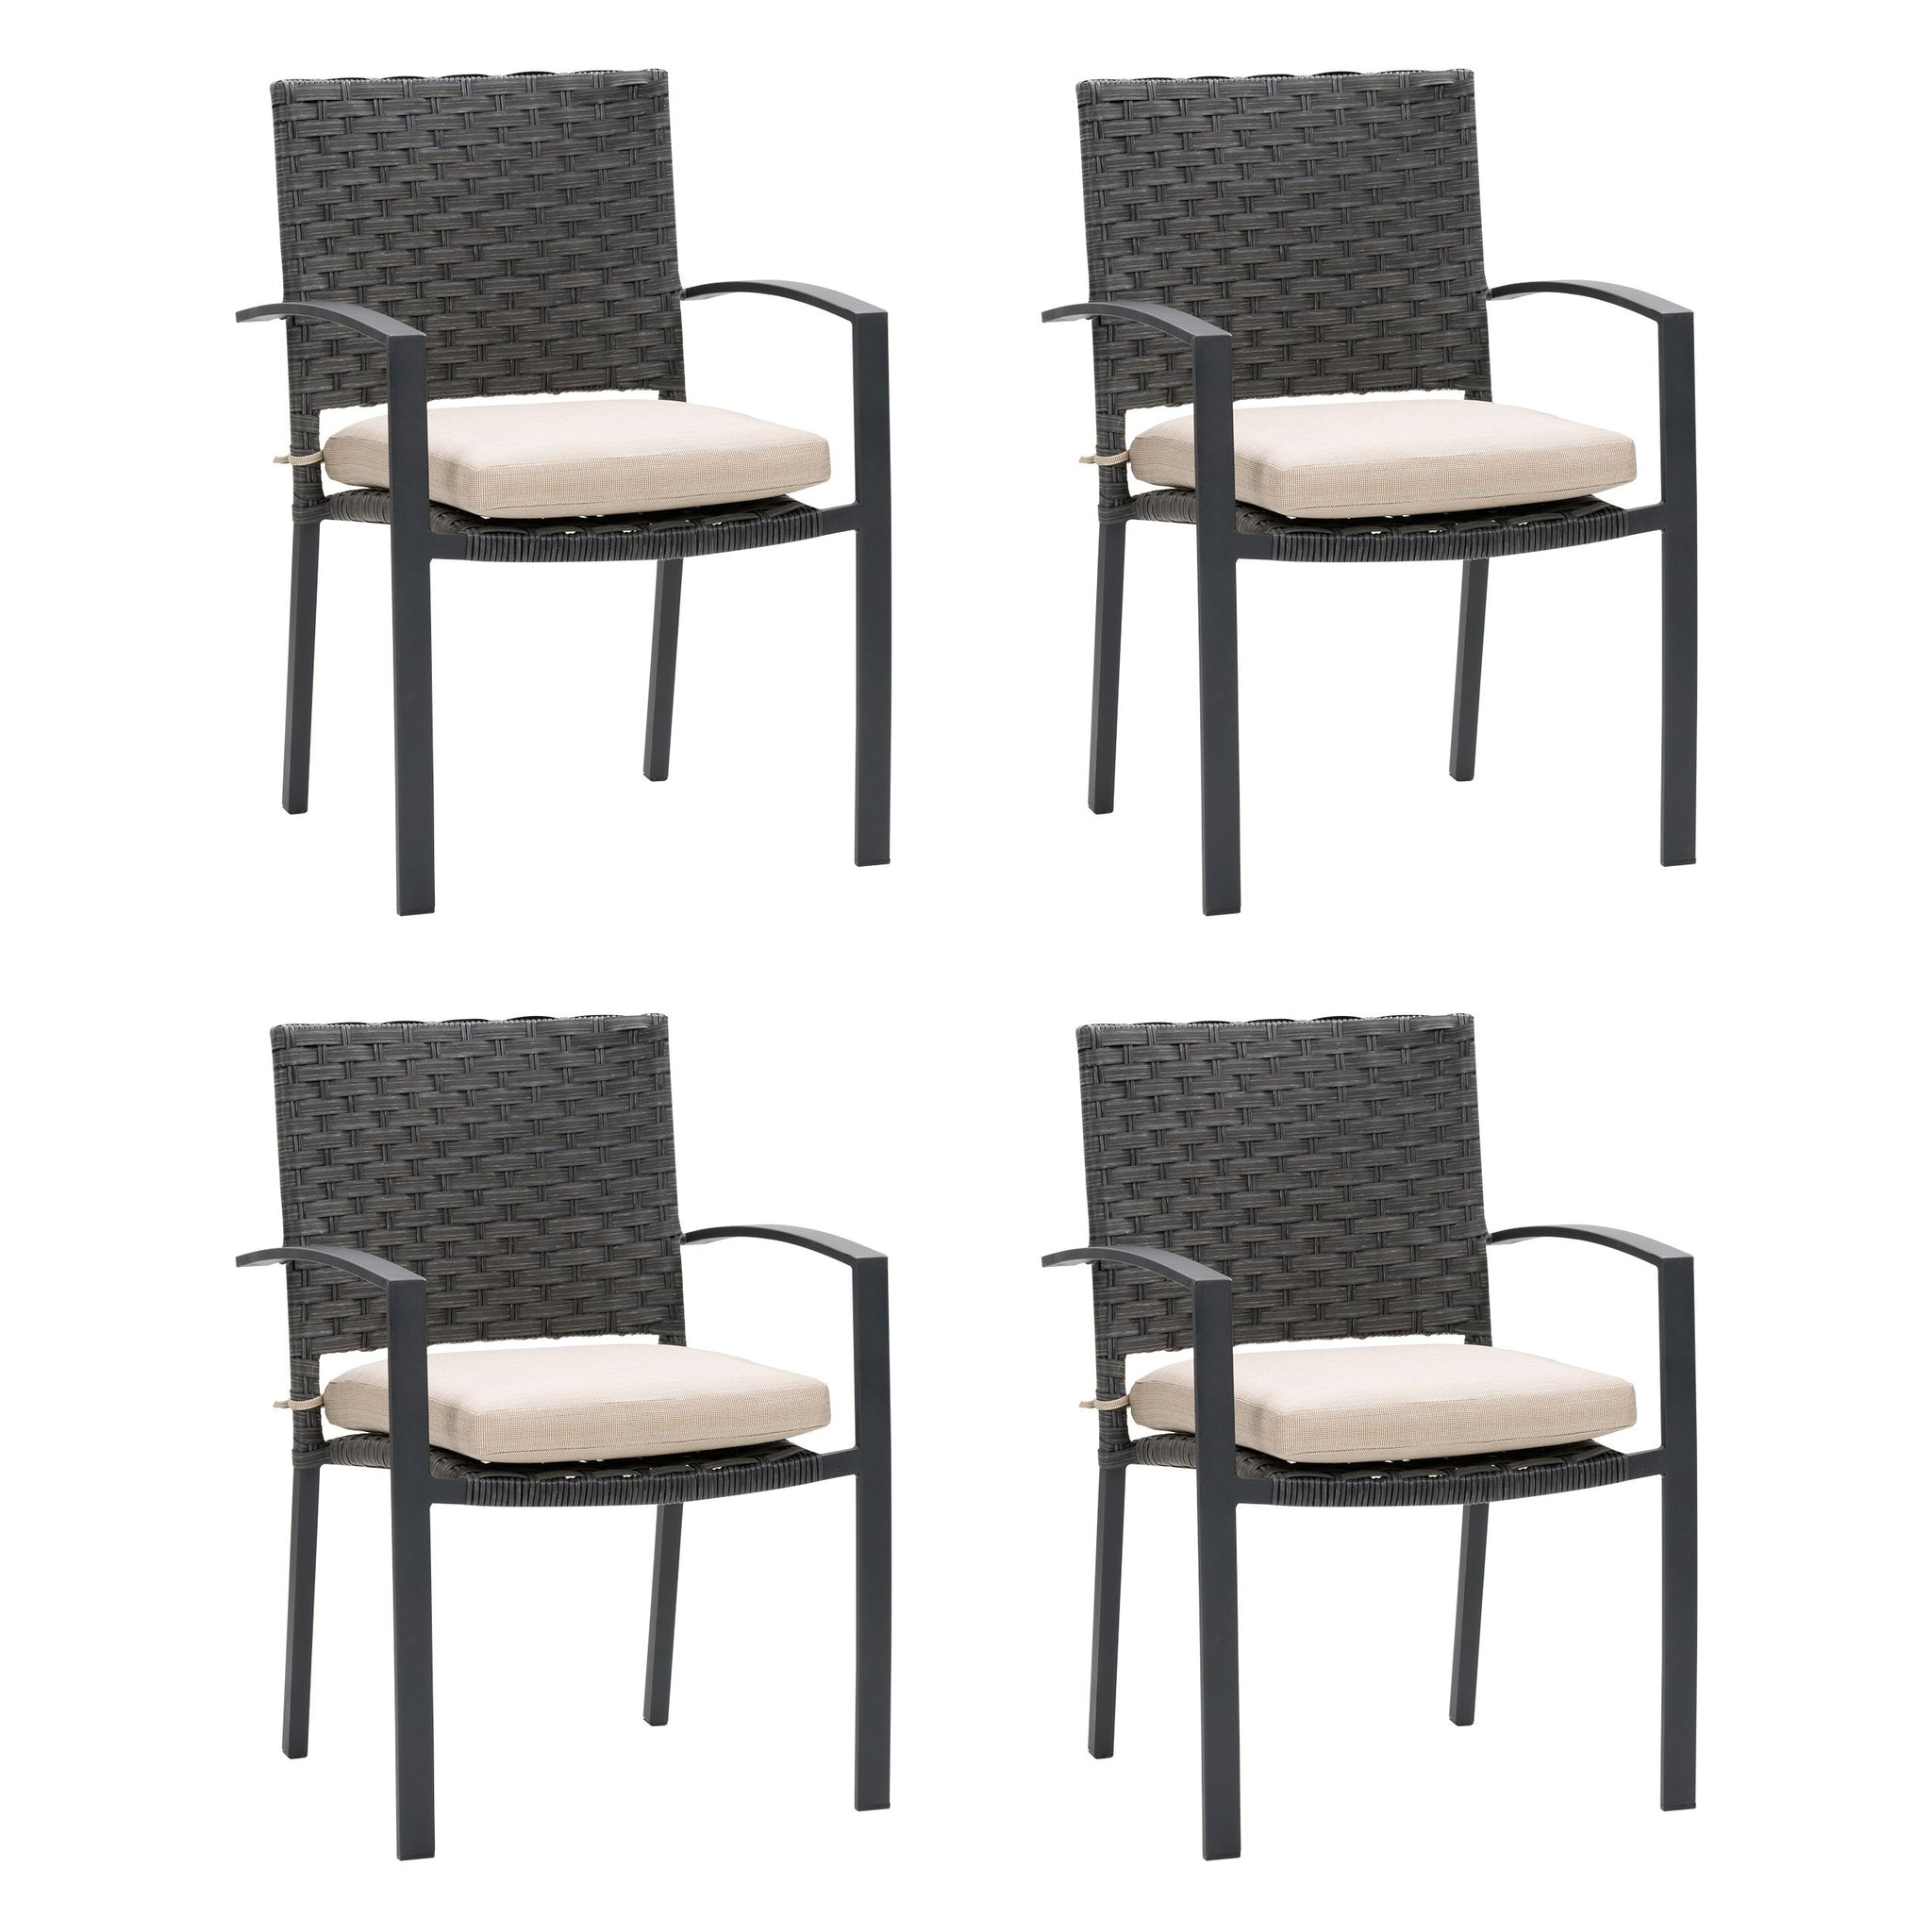 Parkview Wide Rattan Wicker Patio Dining Chairs 4pc Corliving Furniture Ca